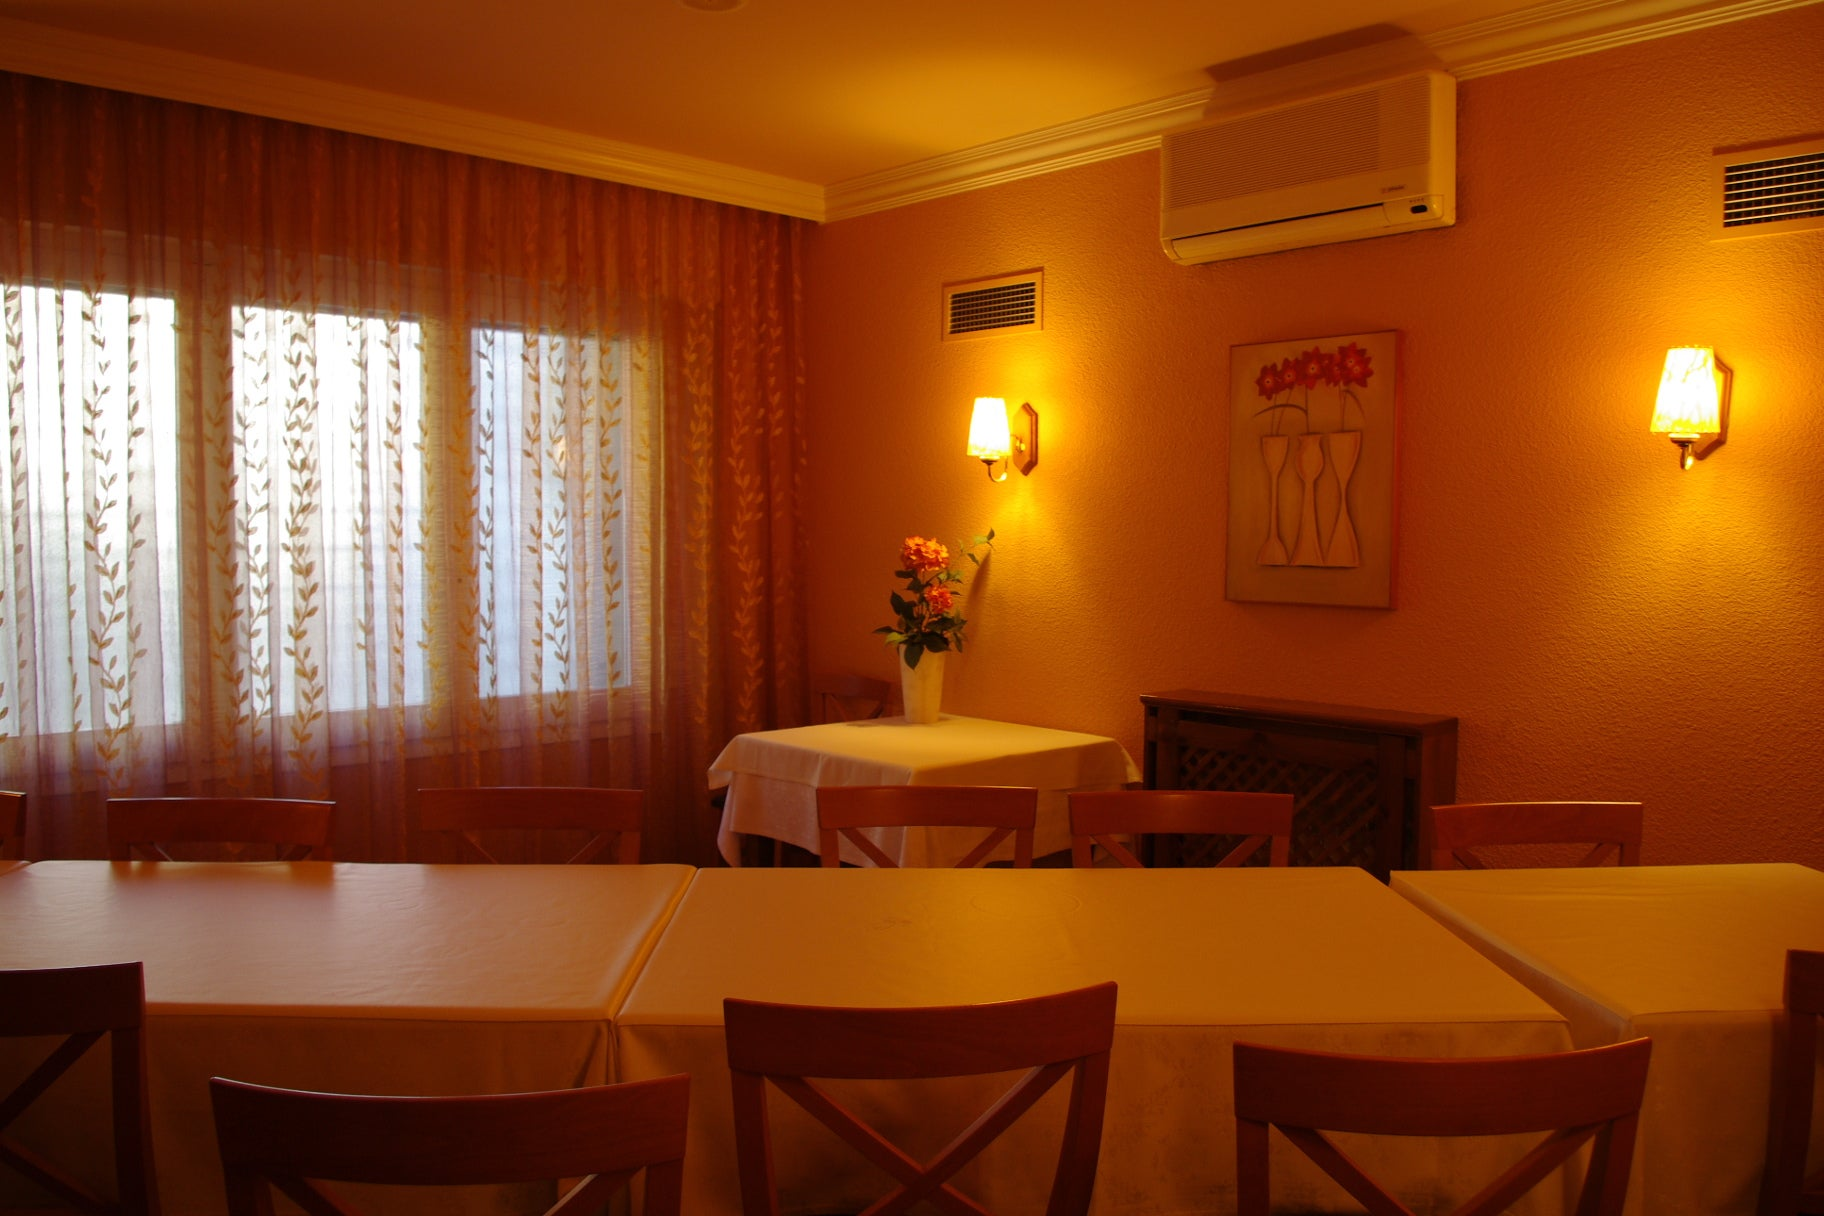 Suite en Restaurante El Reguer